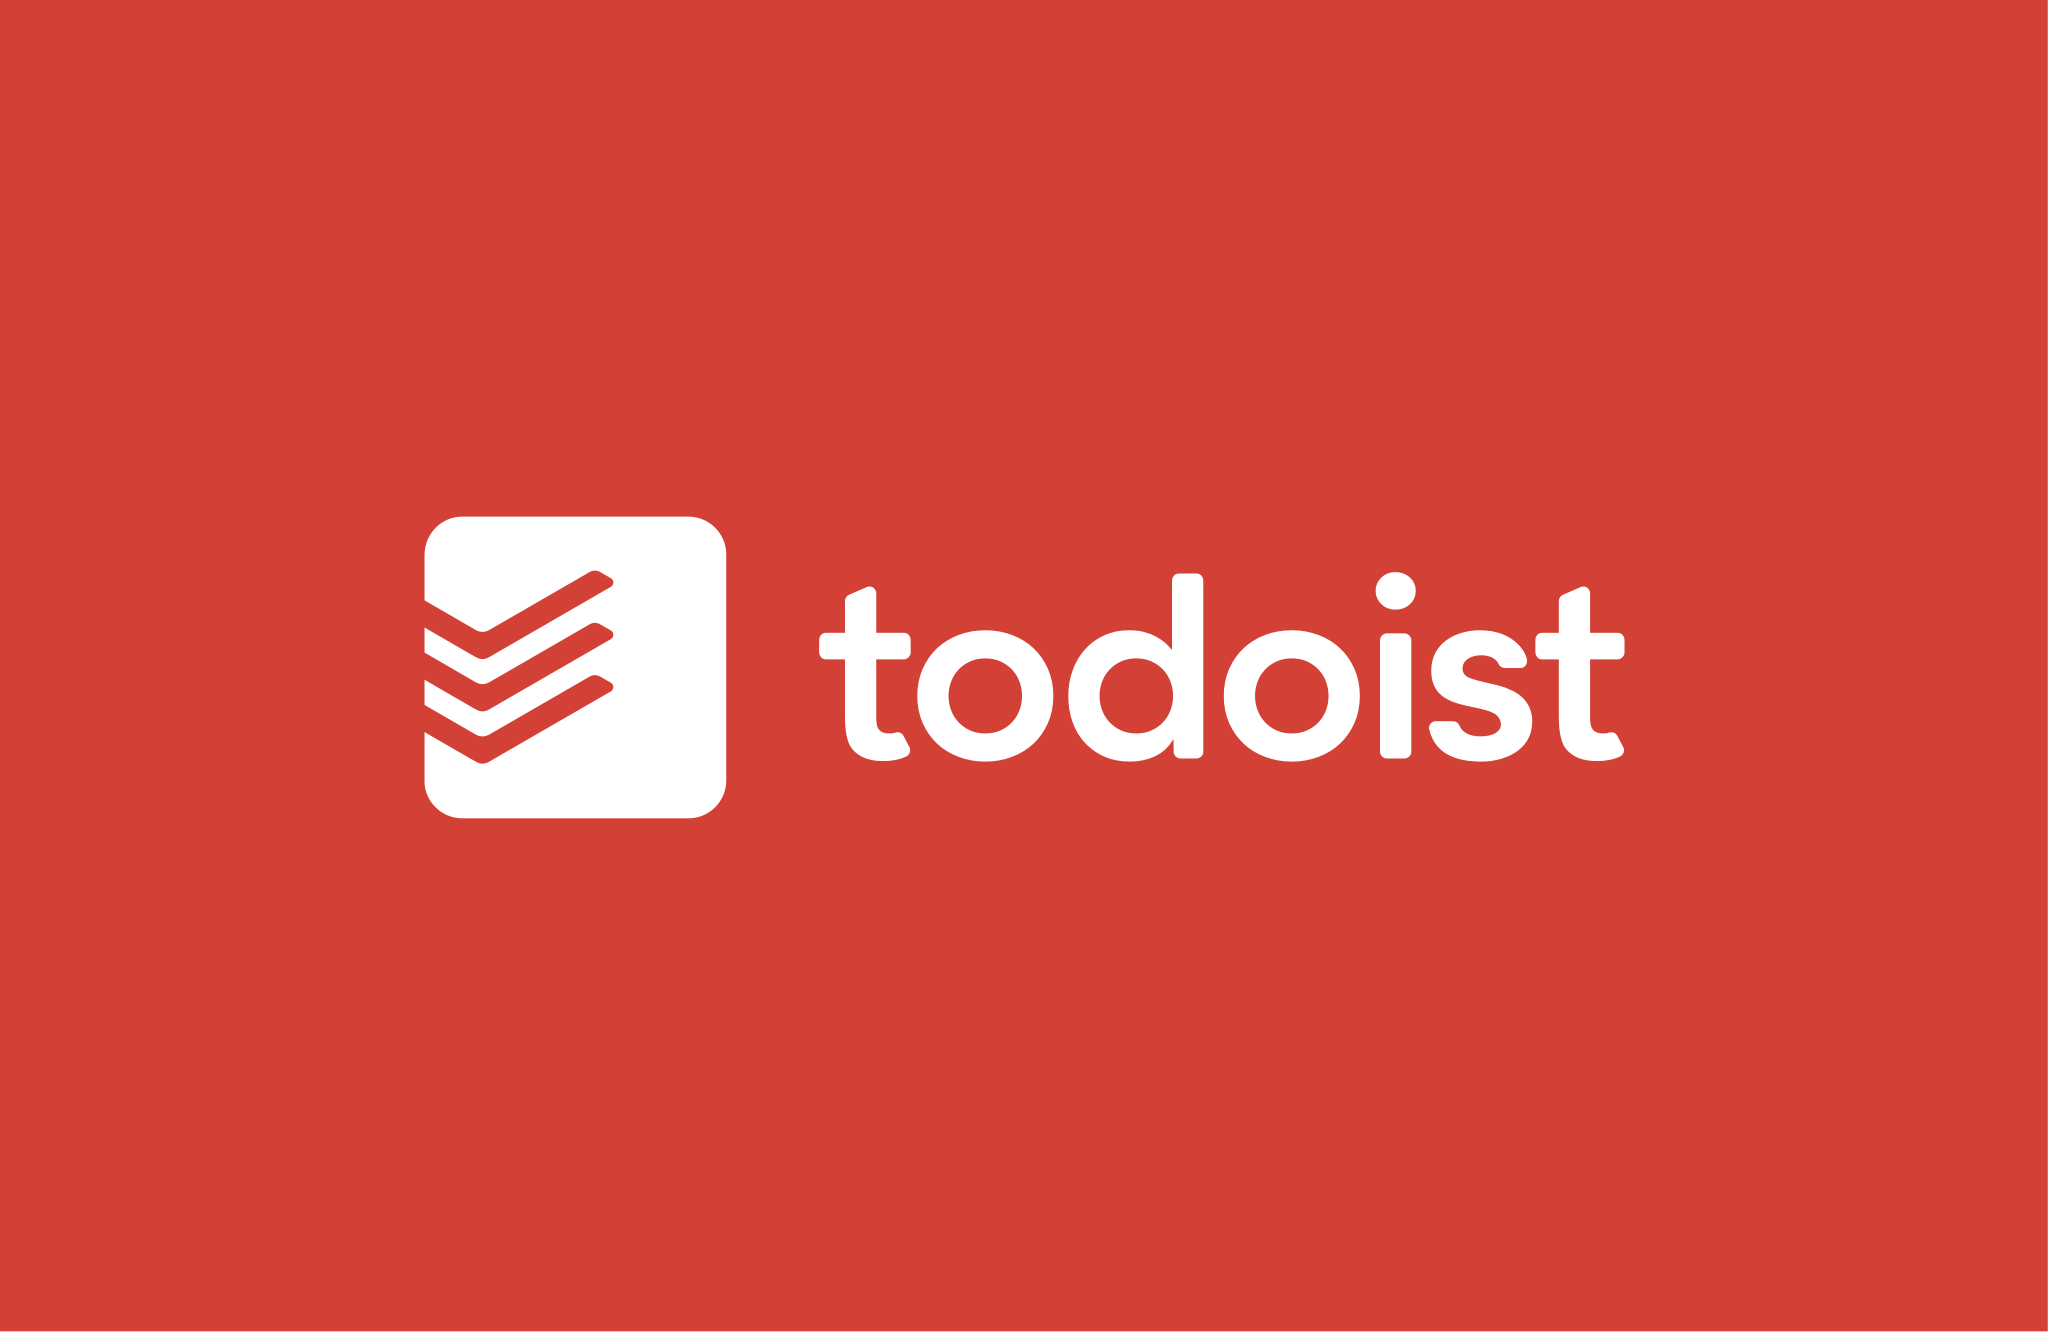 Todoist new logo red